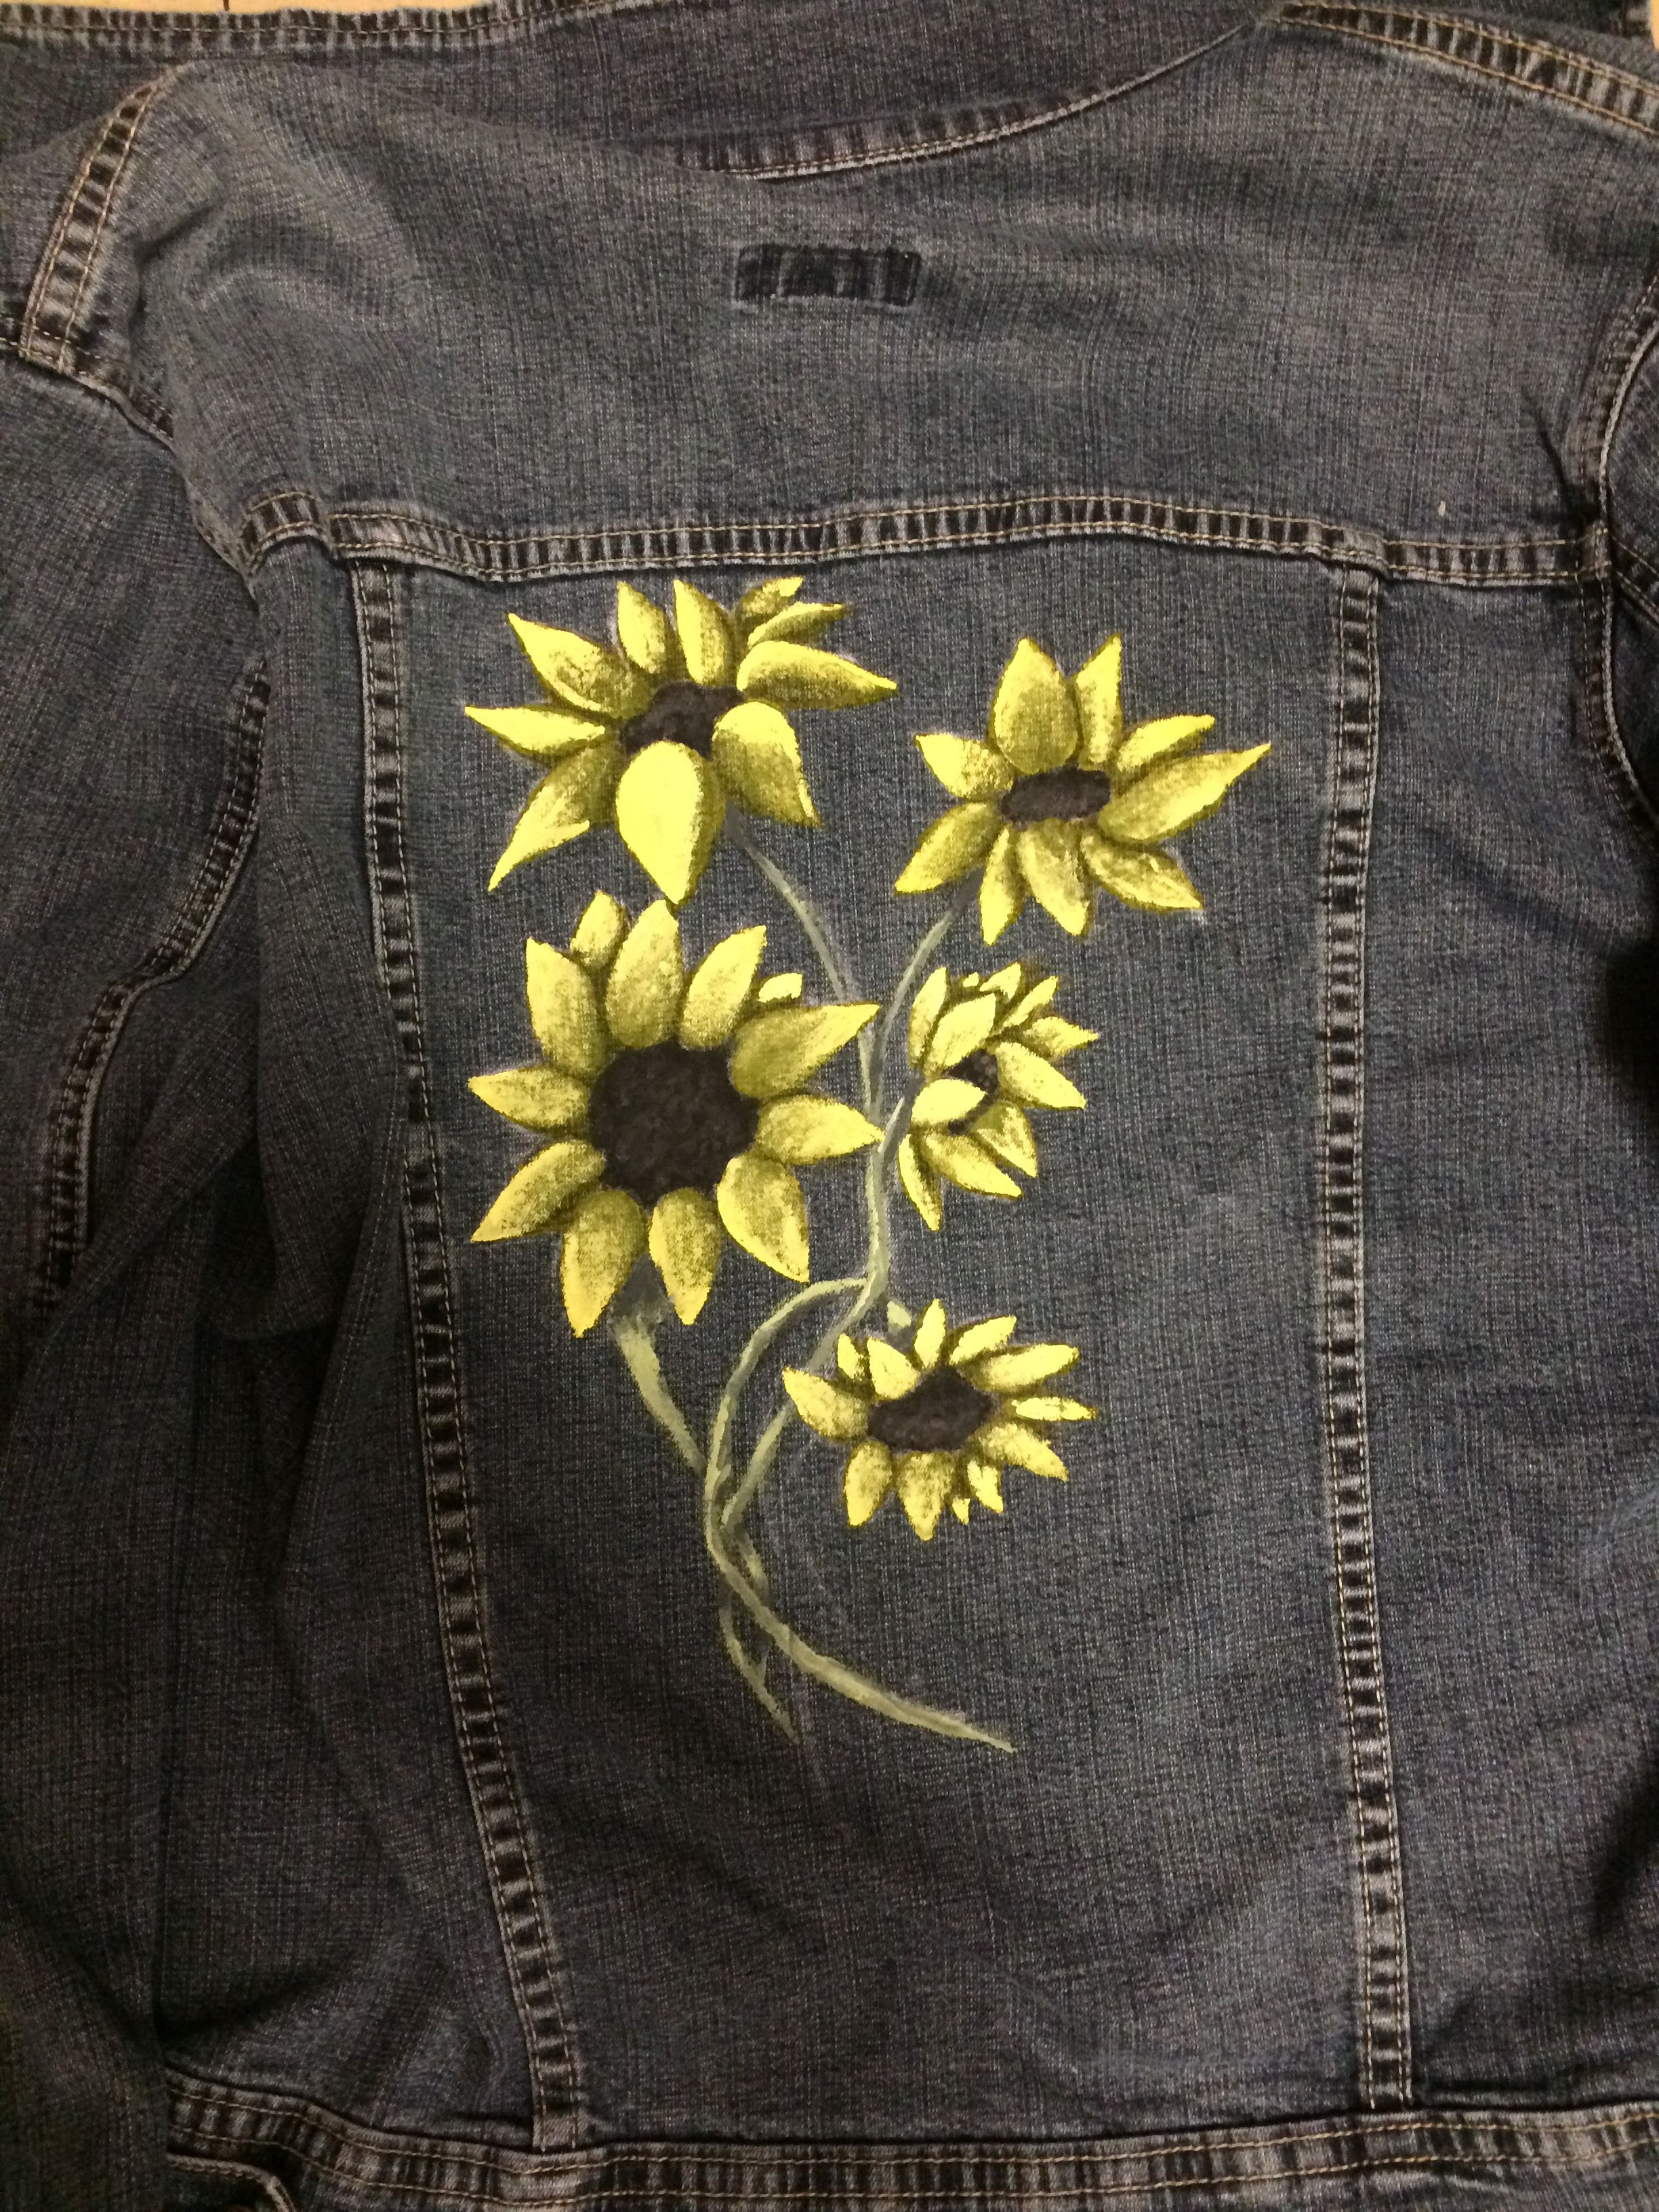 A Painted Picture Of Sunflowers On A Jean Jacket Diy Jeanjacket Denimjacket Sunflowers Paint Jean Jacket Design Custom Jean Jacket Painted Jacket [ 3264 x 2448 Pixel ]